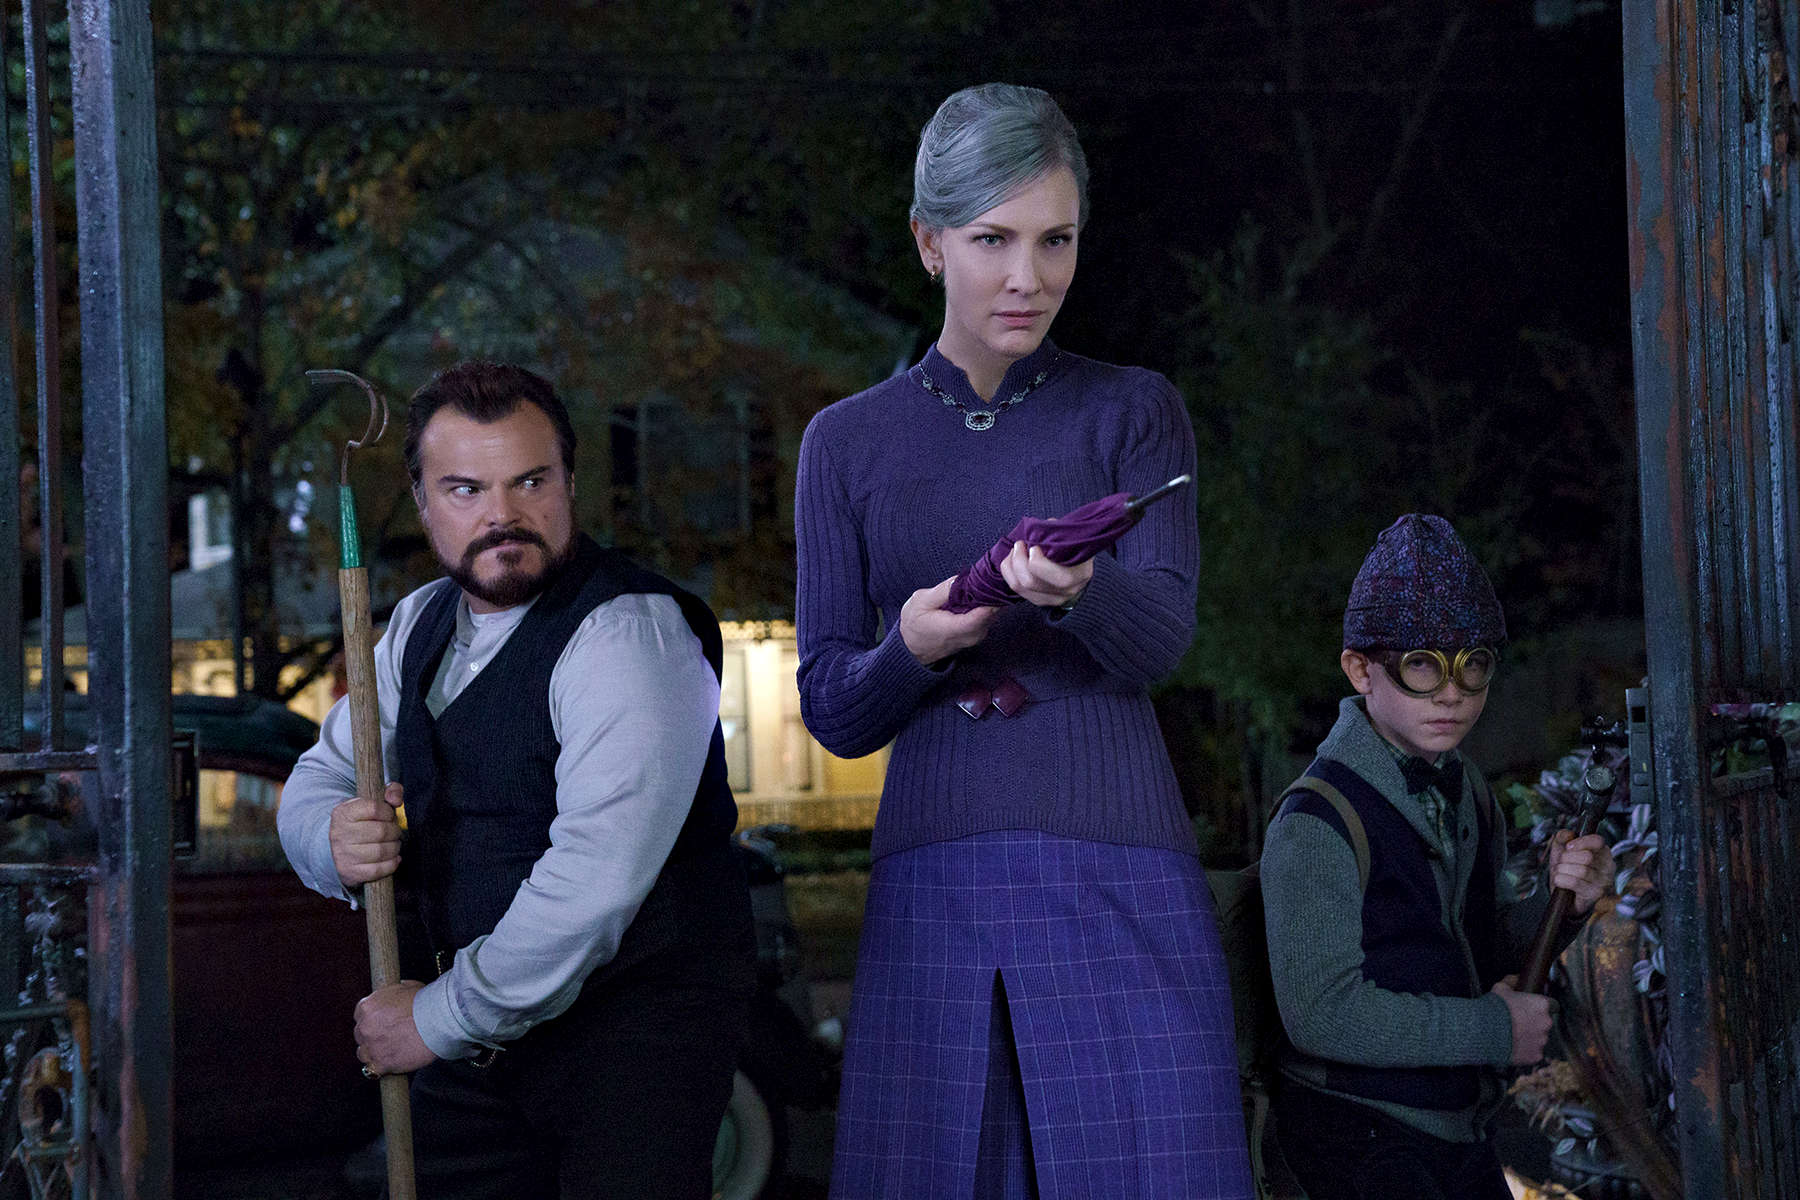 JACK BLACK, CATE BLANCHETT, and OWEN VACCARO star in The House with a Clock in Its Walls, from Amblin Entertainment.  The magical adventure tells the spine-tingling tale of 10-year-old Lewis (Vaccaro) who goes to live with his uncle (Black) in a creaky old house with a mysterious tick-tocking heart.  But his new town's sleepy façade jolts to life with a secret world of warlocks and witches when Lewis accidentally awakens the dead.